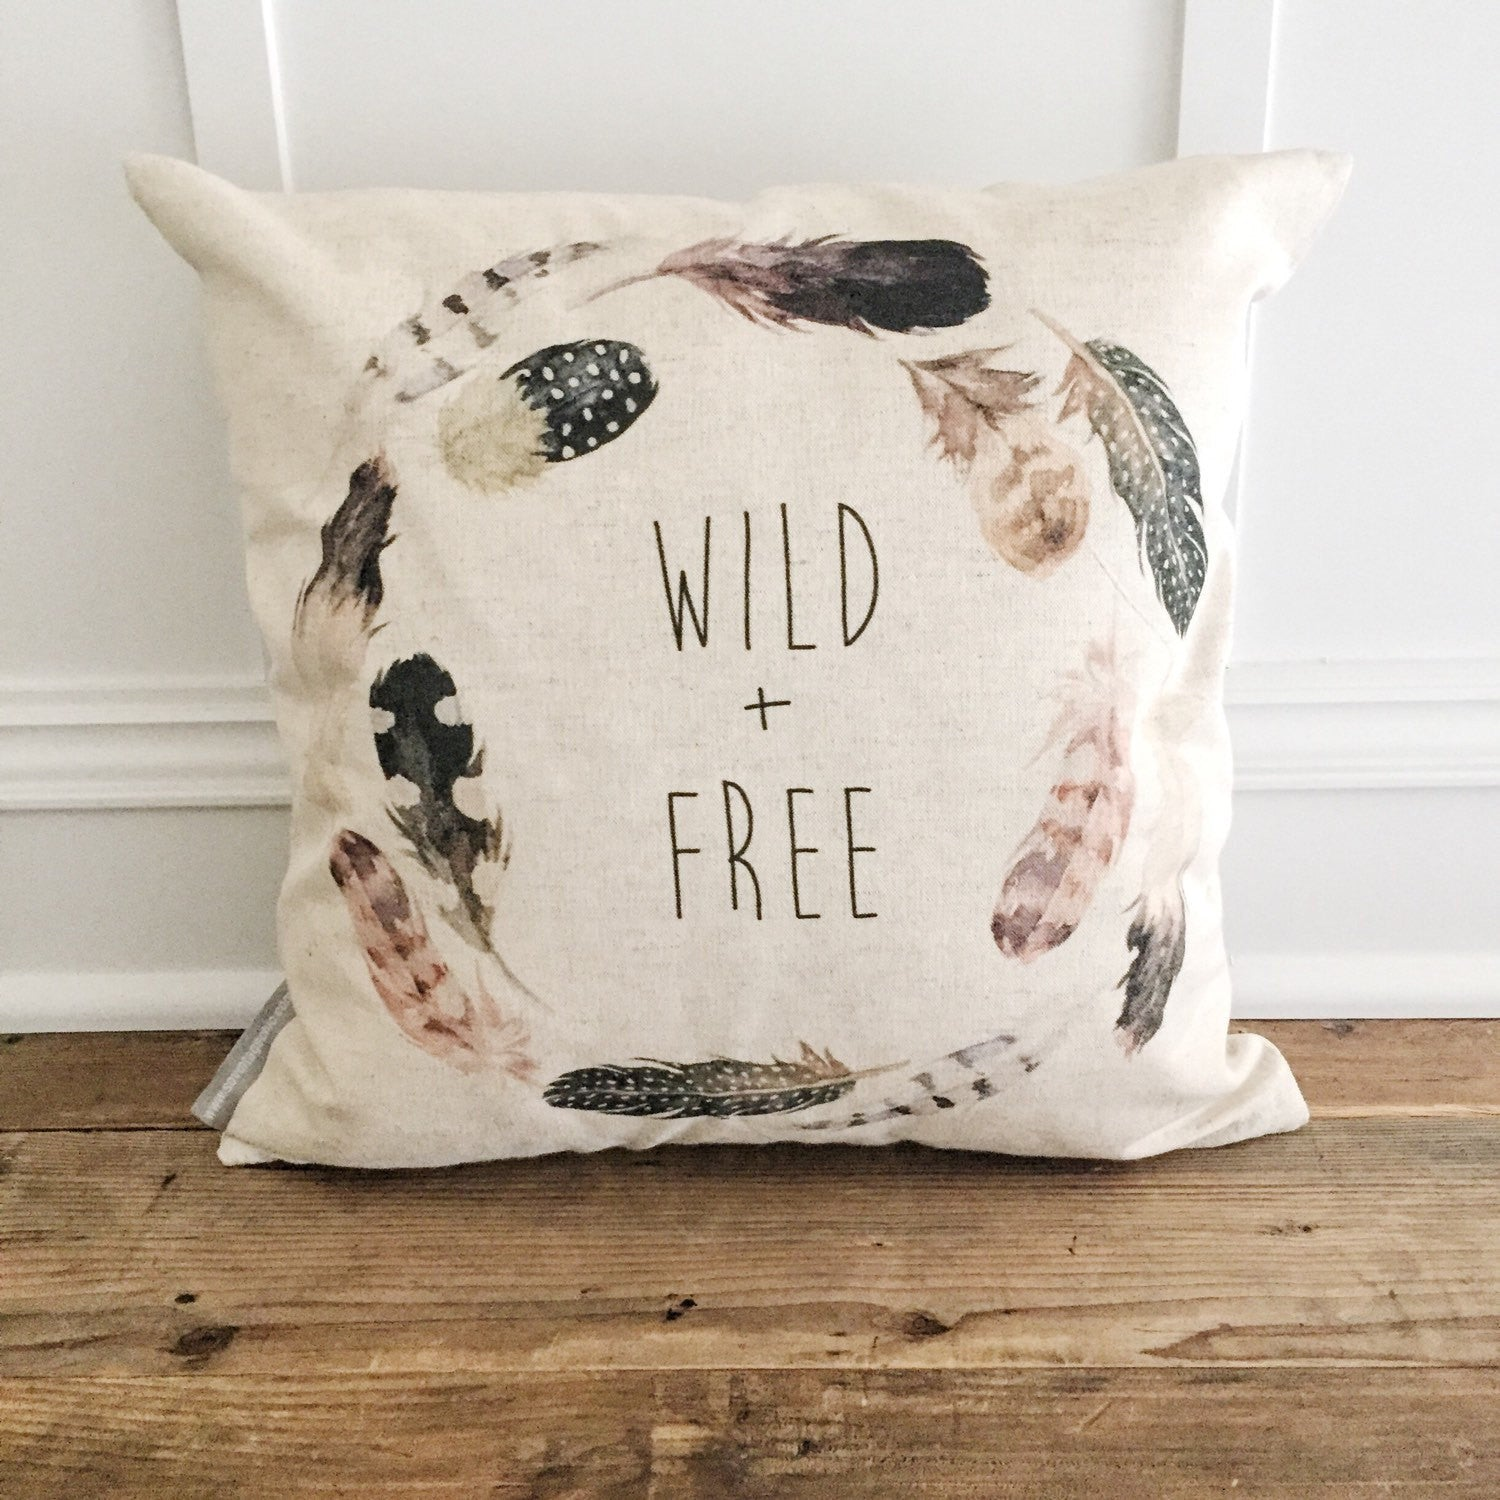 Wild + Free Pillow Cover - Linen and Ivory